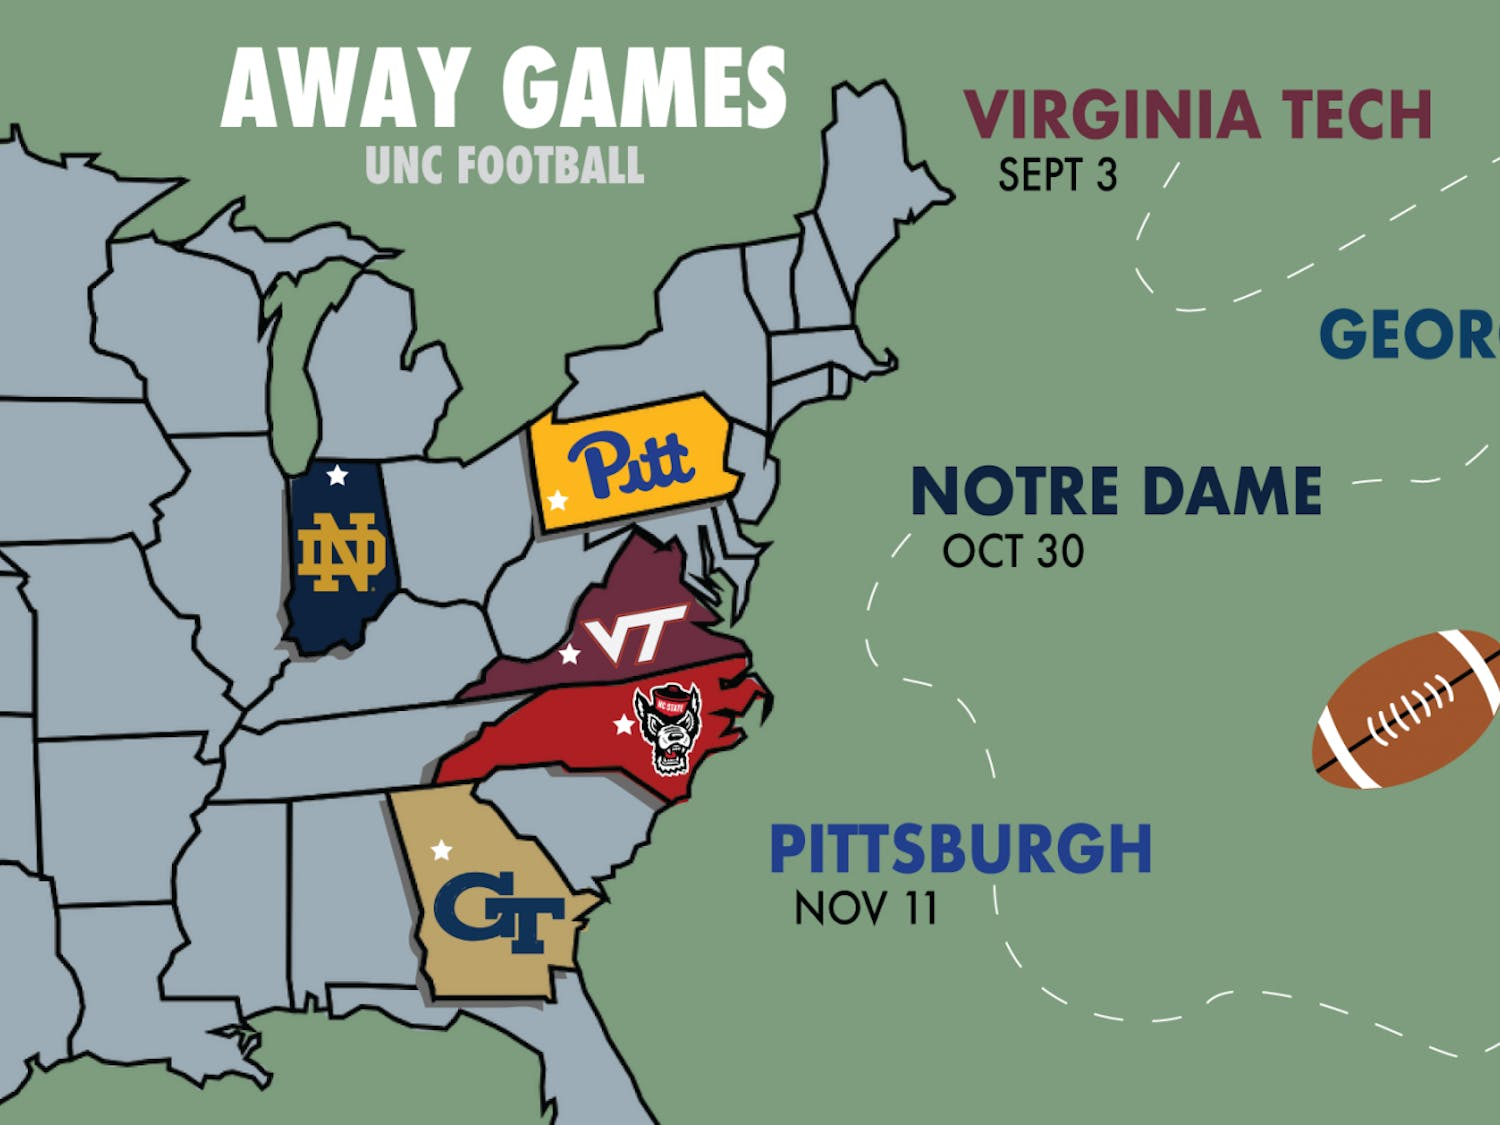 UNC's road game schedule will see the team travel to Virginia, Georgia, Indiana, Pennsylvania and nearby Raleigh, N.C.